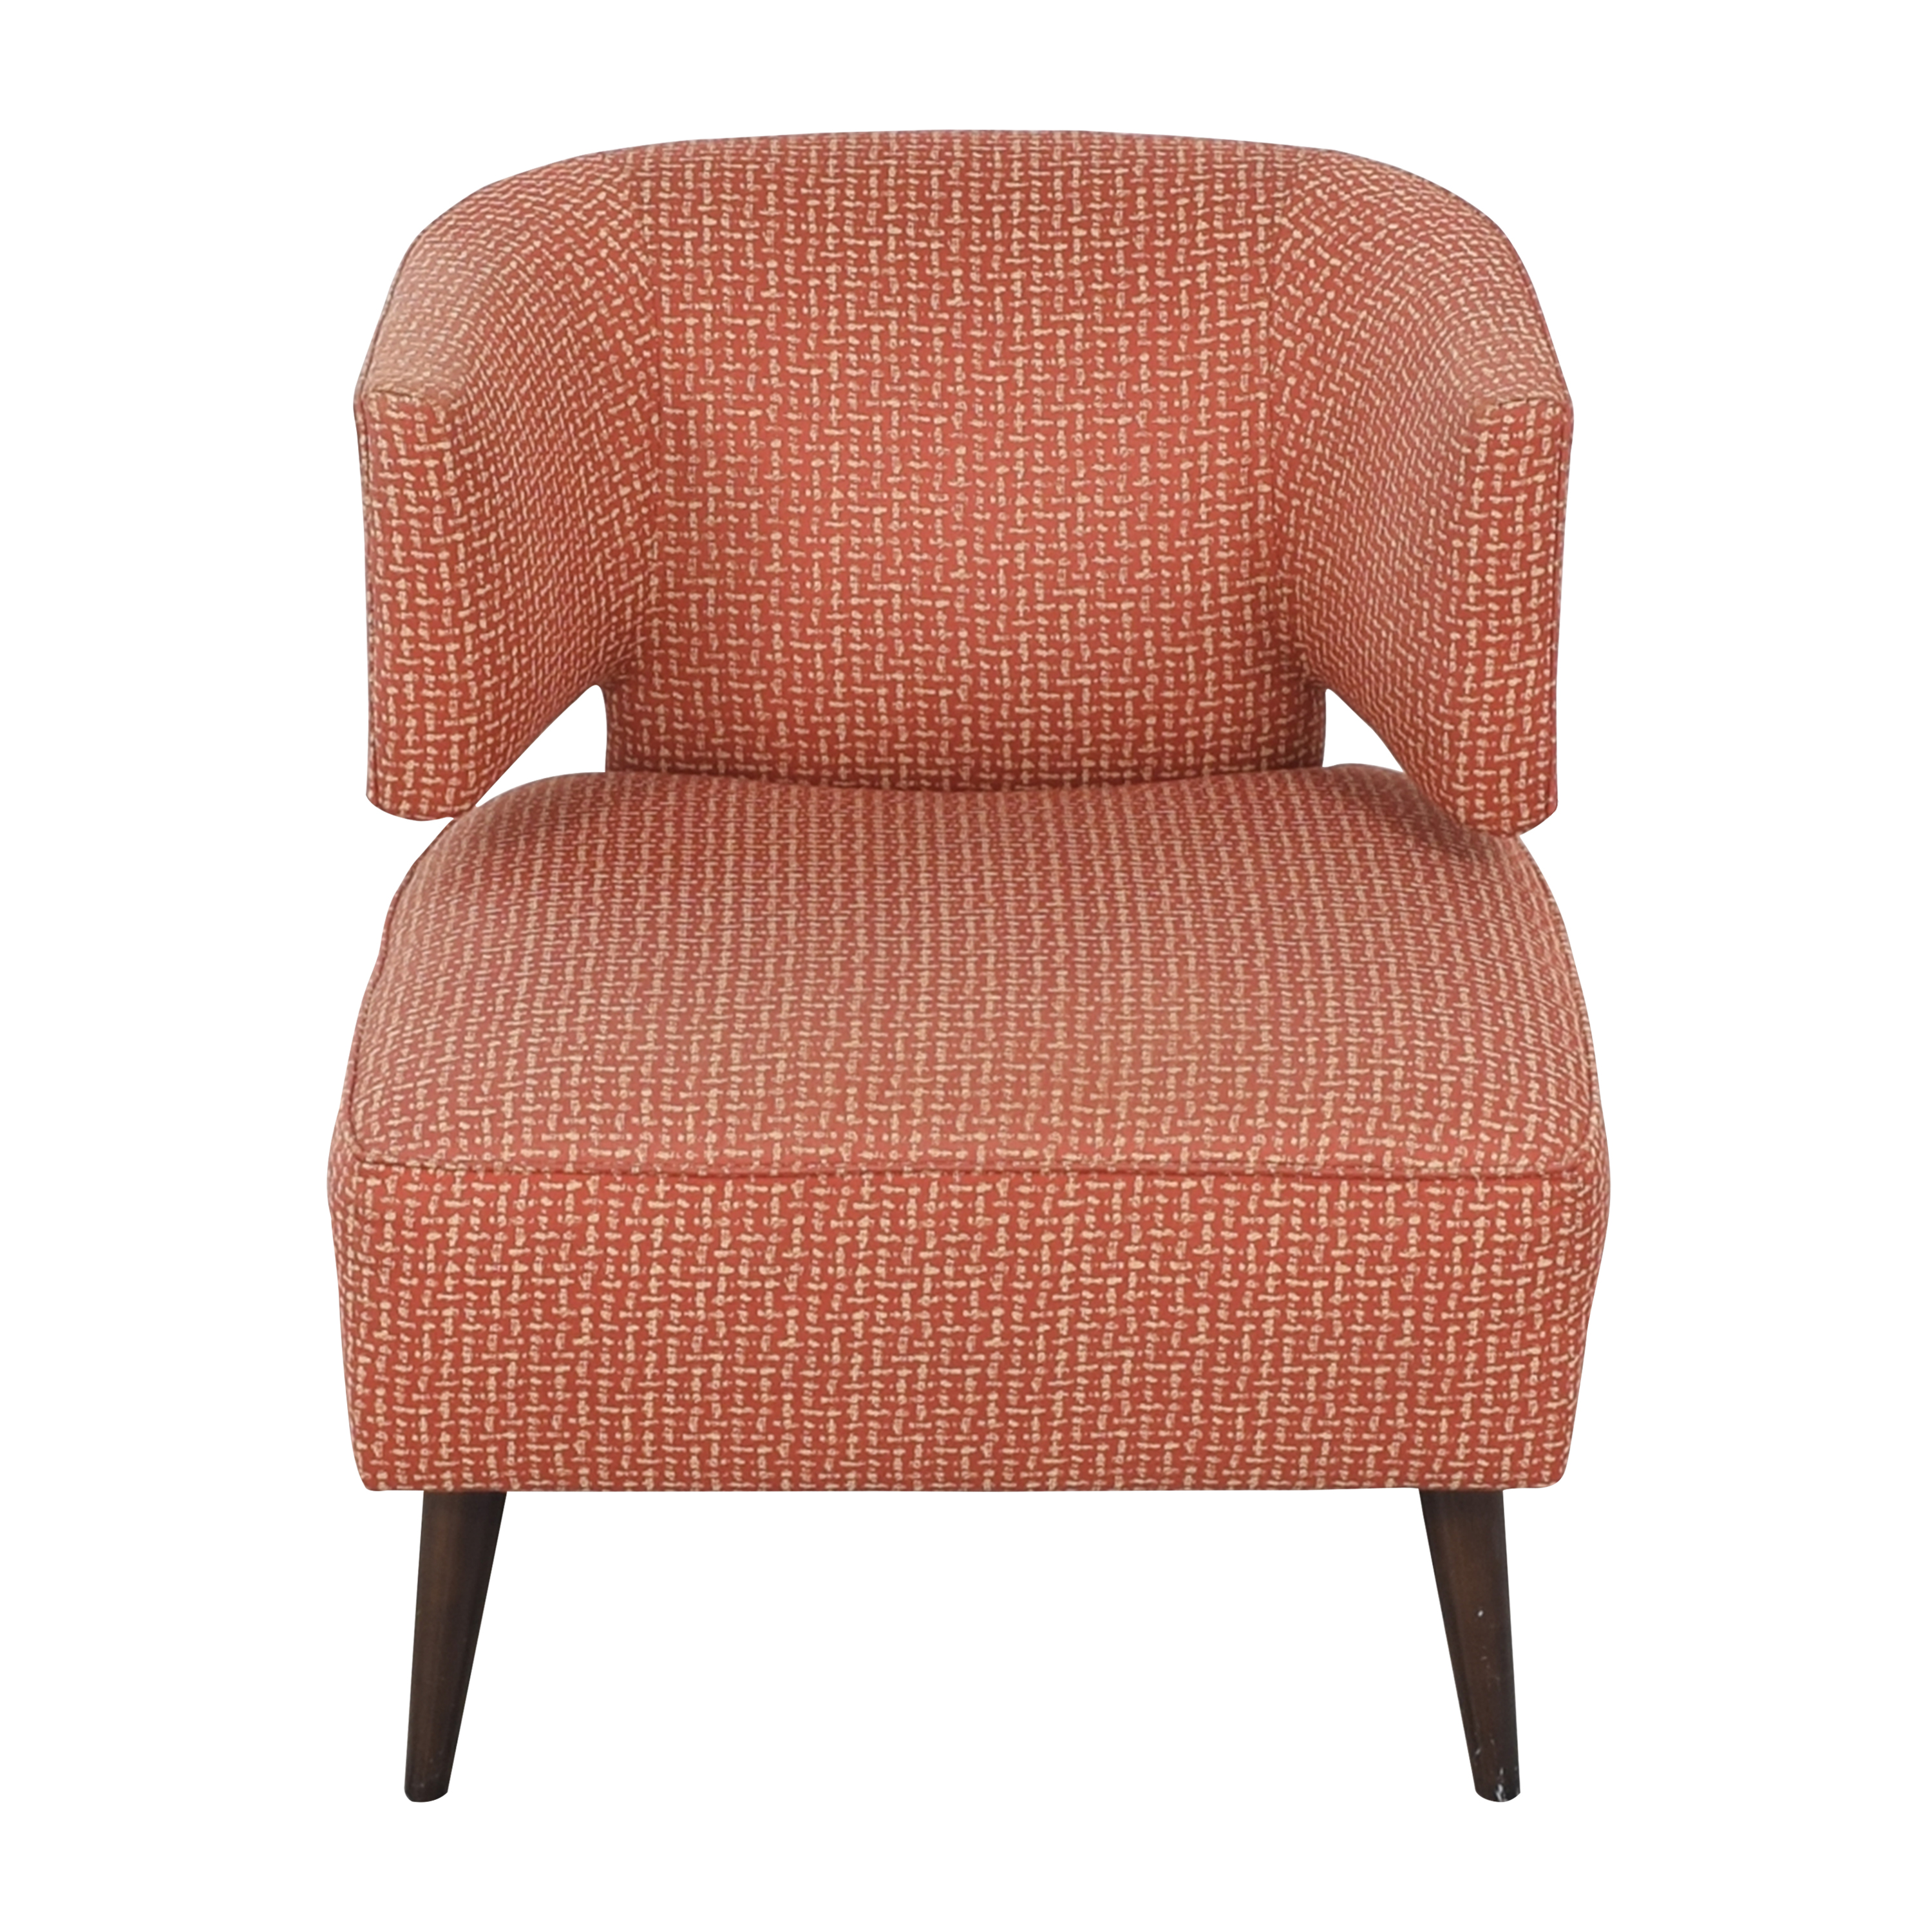 Room & Board Room & Board Modern Accent Chair price